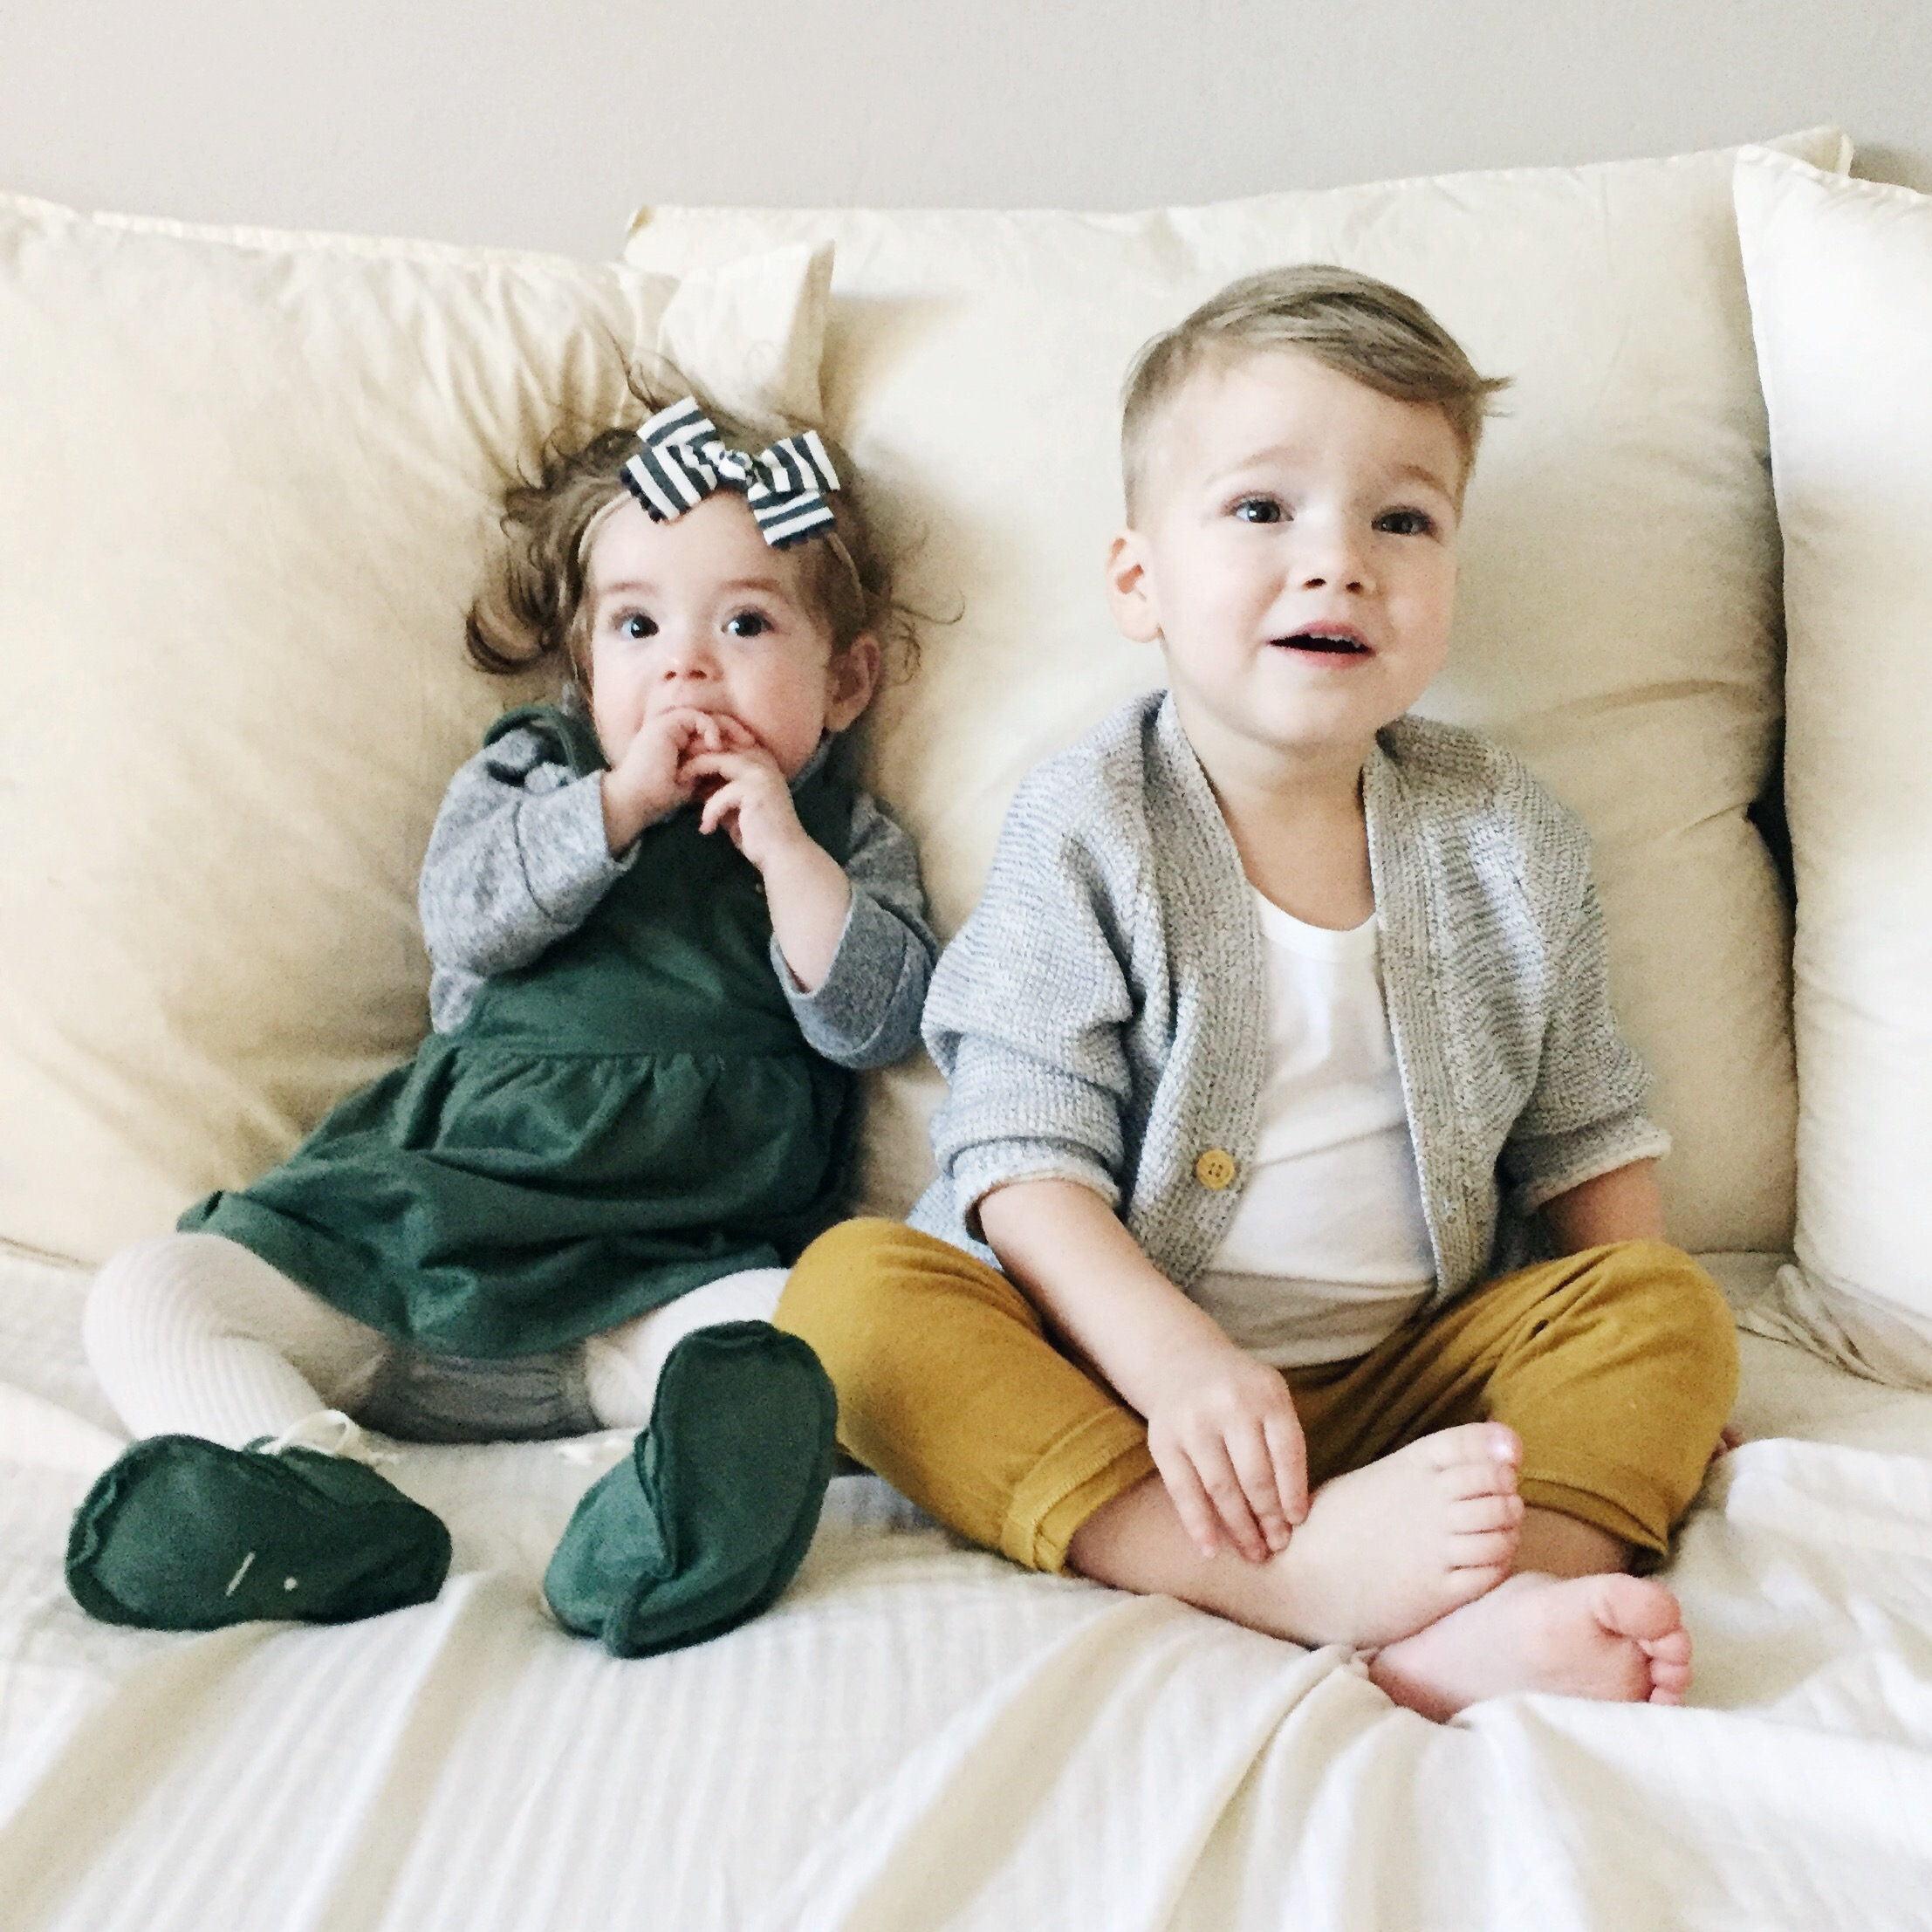 Happy Birthday Baby Girl! {Charlie Update} by San Francisco mom blogger For The Love